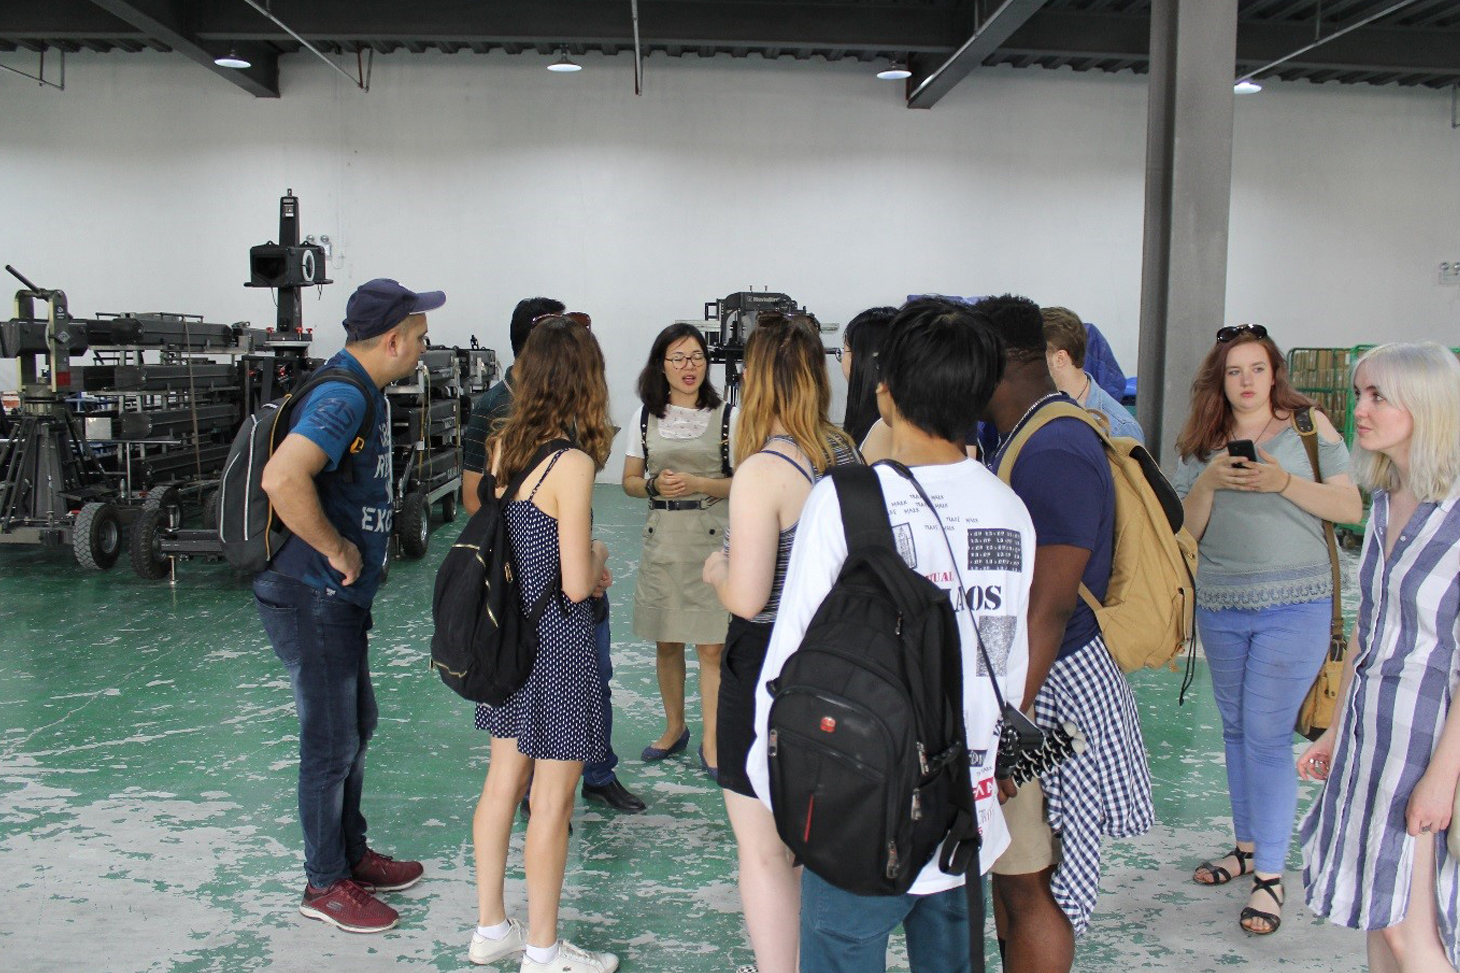 Visiting Scenefone (equipment rental and indoor shooting base)